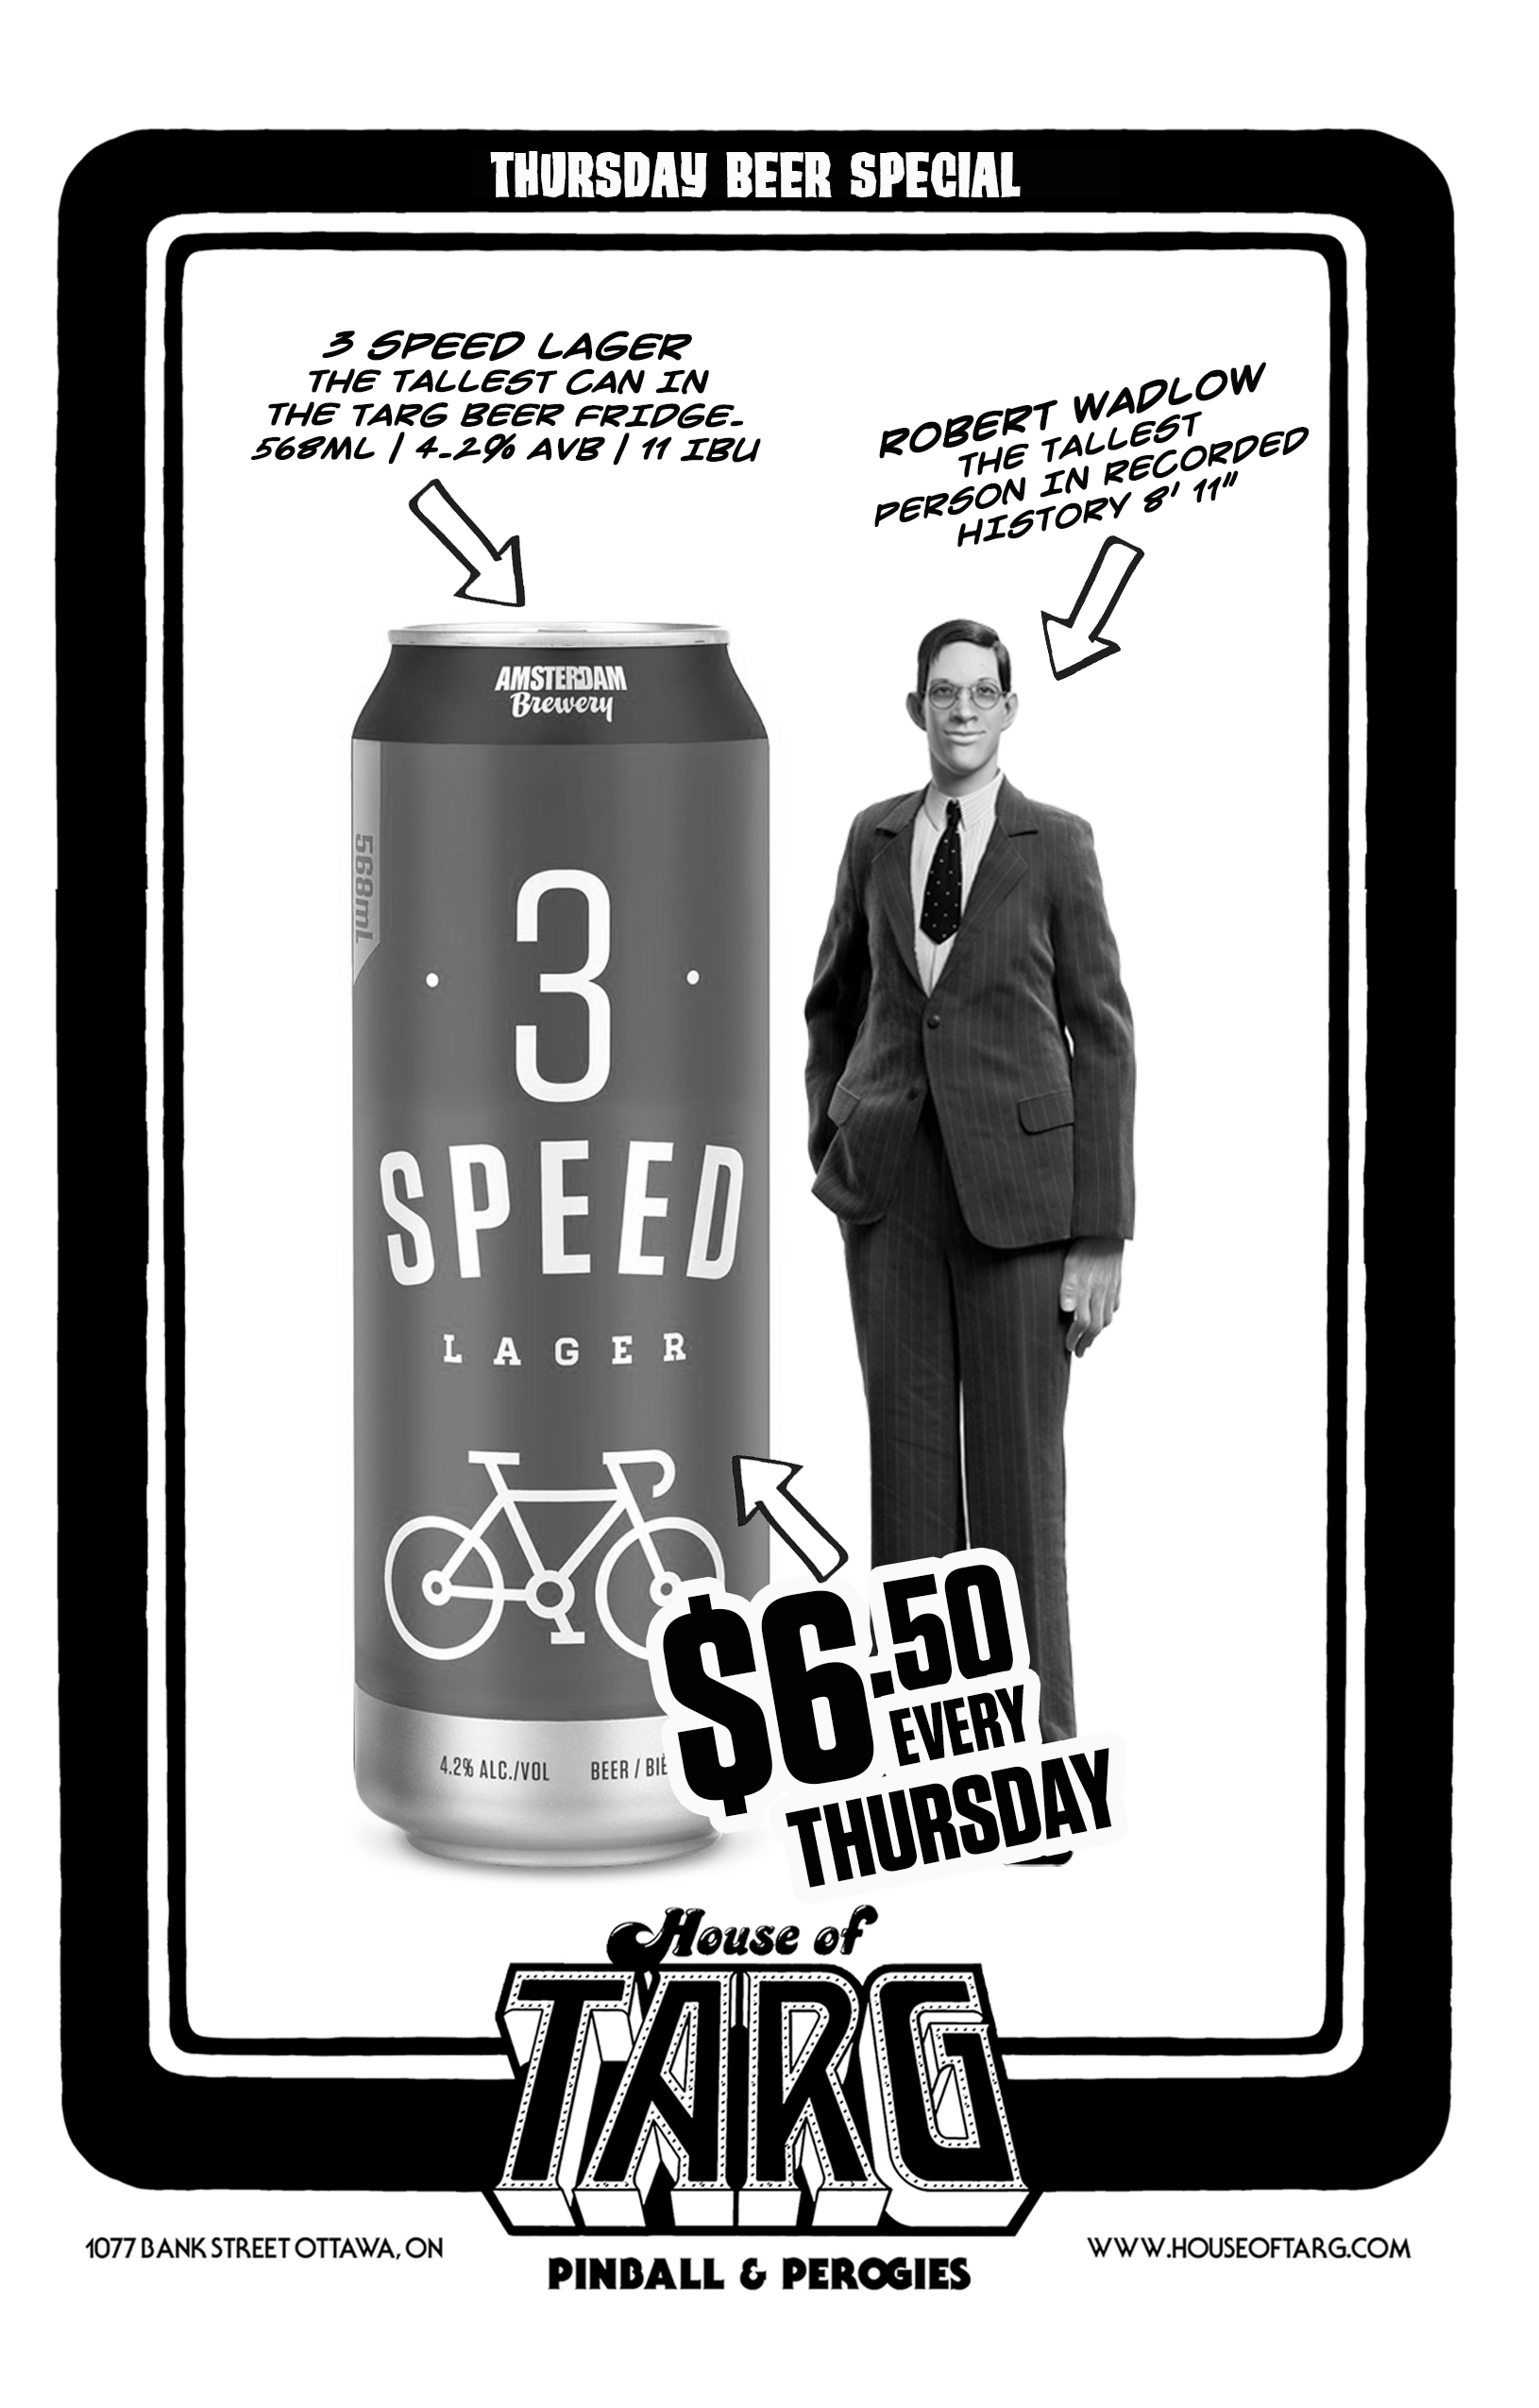 EVERY THURSDAY  JUST $6.50 FOR THE TALLEST CAN IN OUR FRIDGE…. AMSTERDAM 3 SPEED LAGER - 569ml